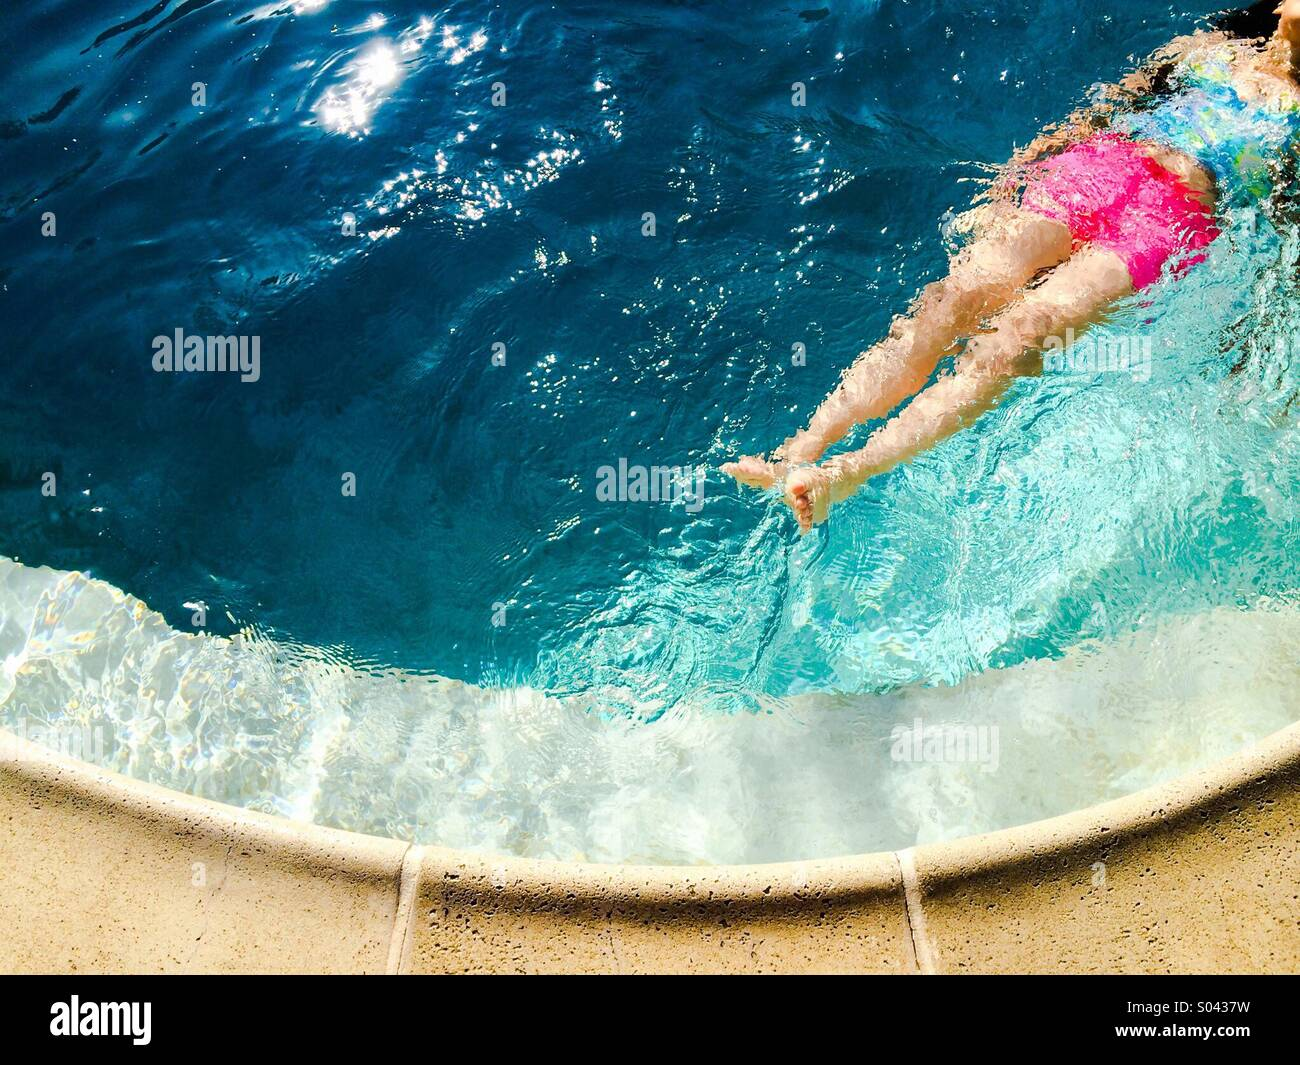 Young girl floating on her back in a swimming pool - Stock Image